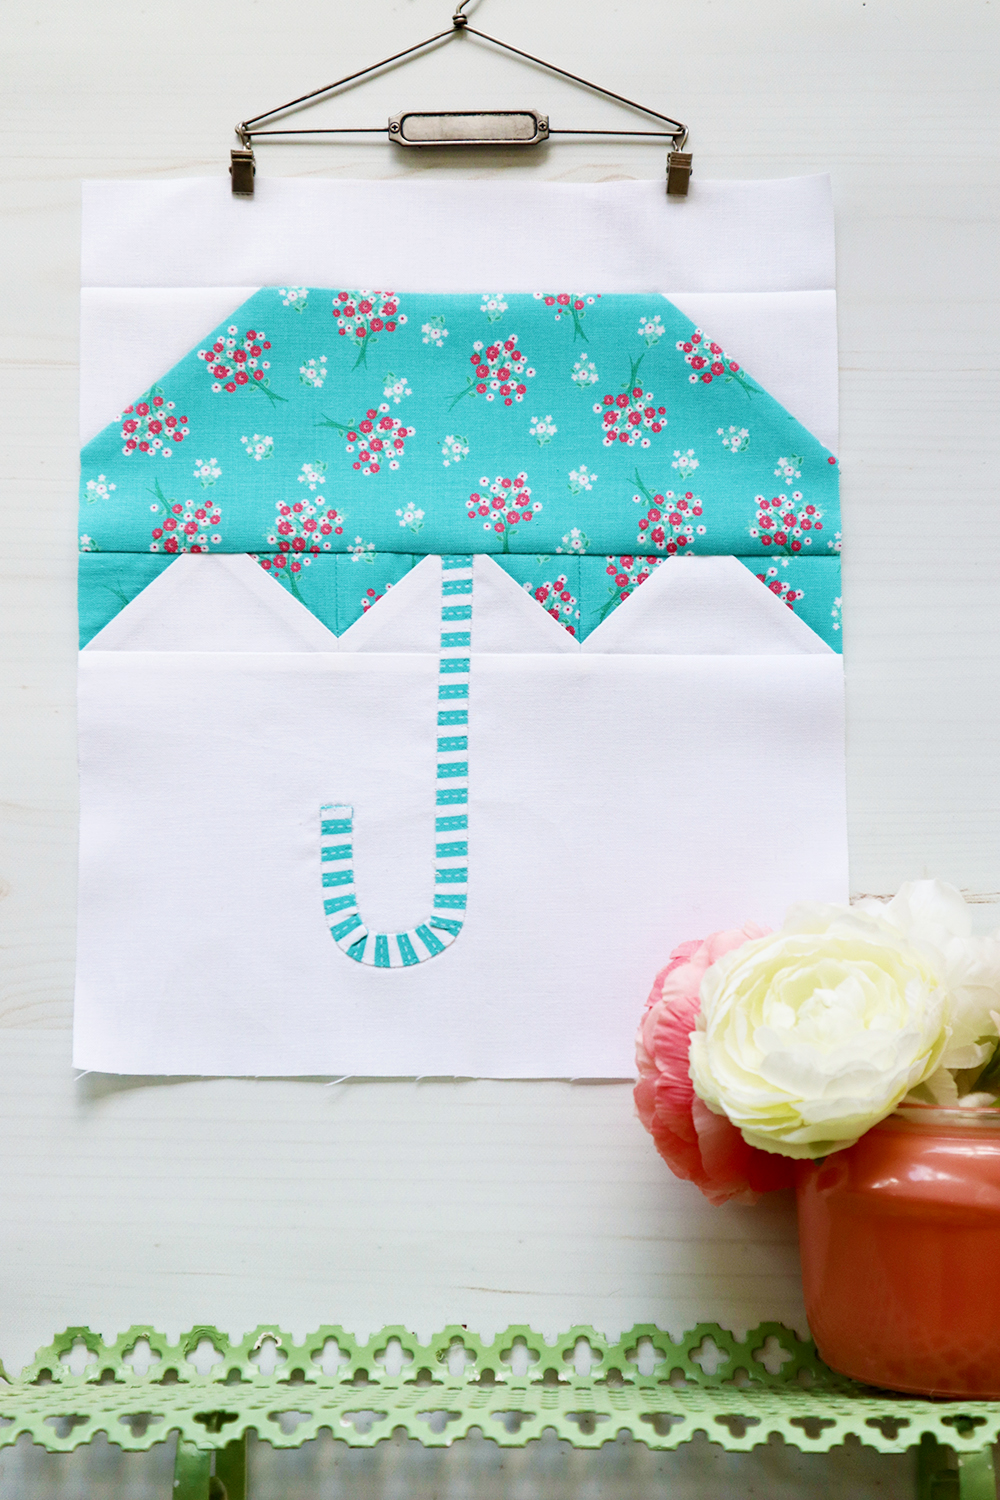 Umbrella Singing in the Rain Quilt Block